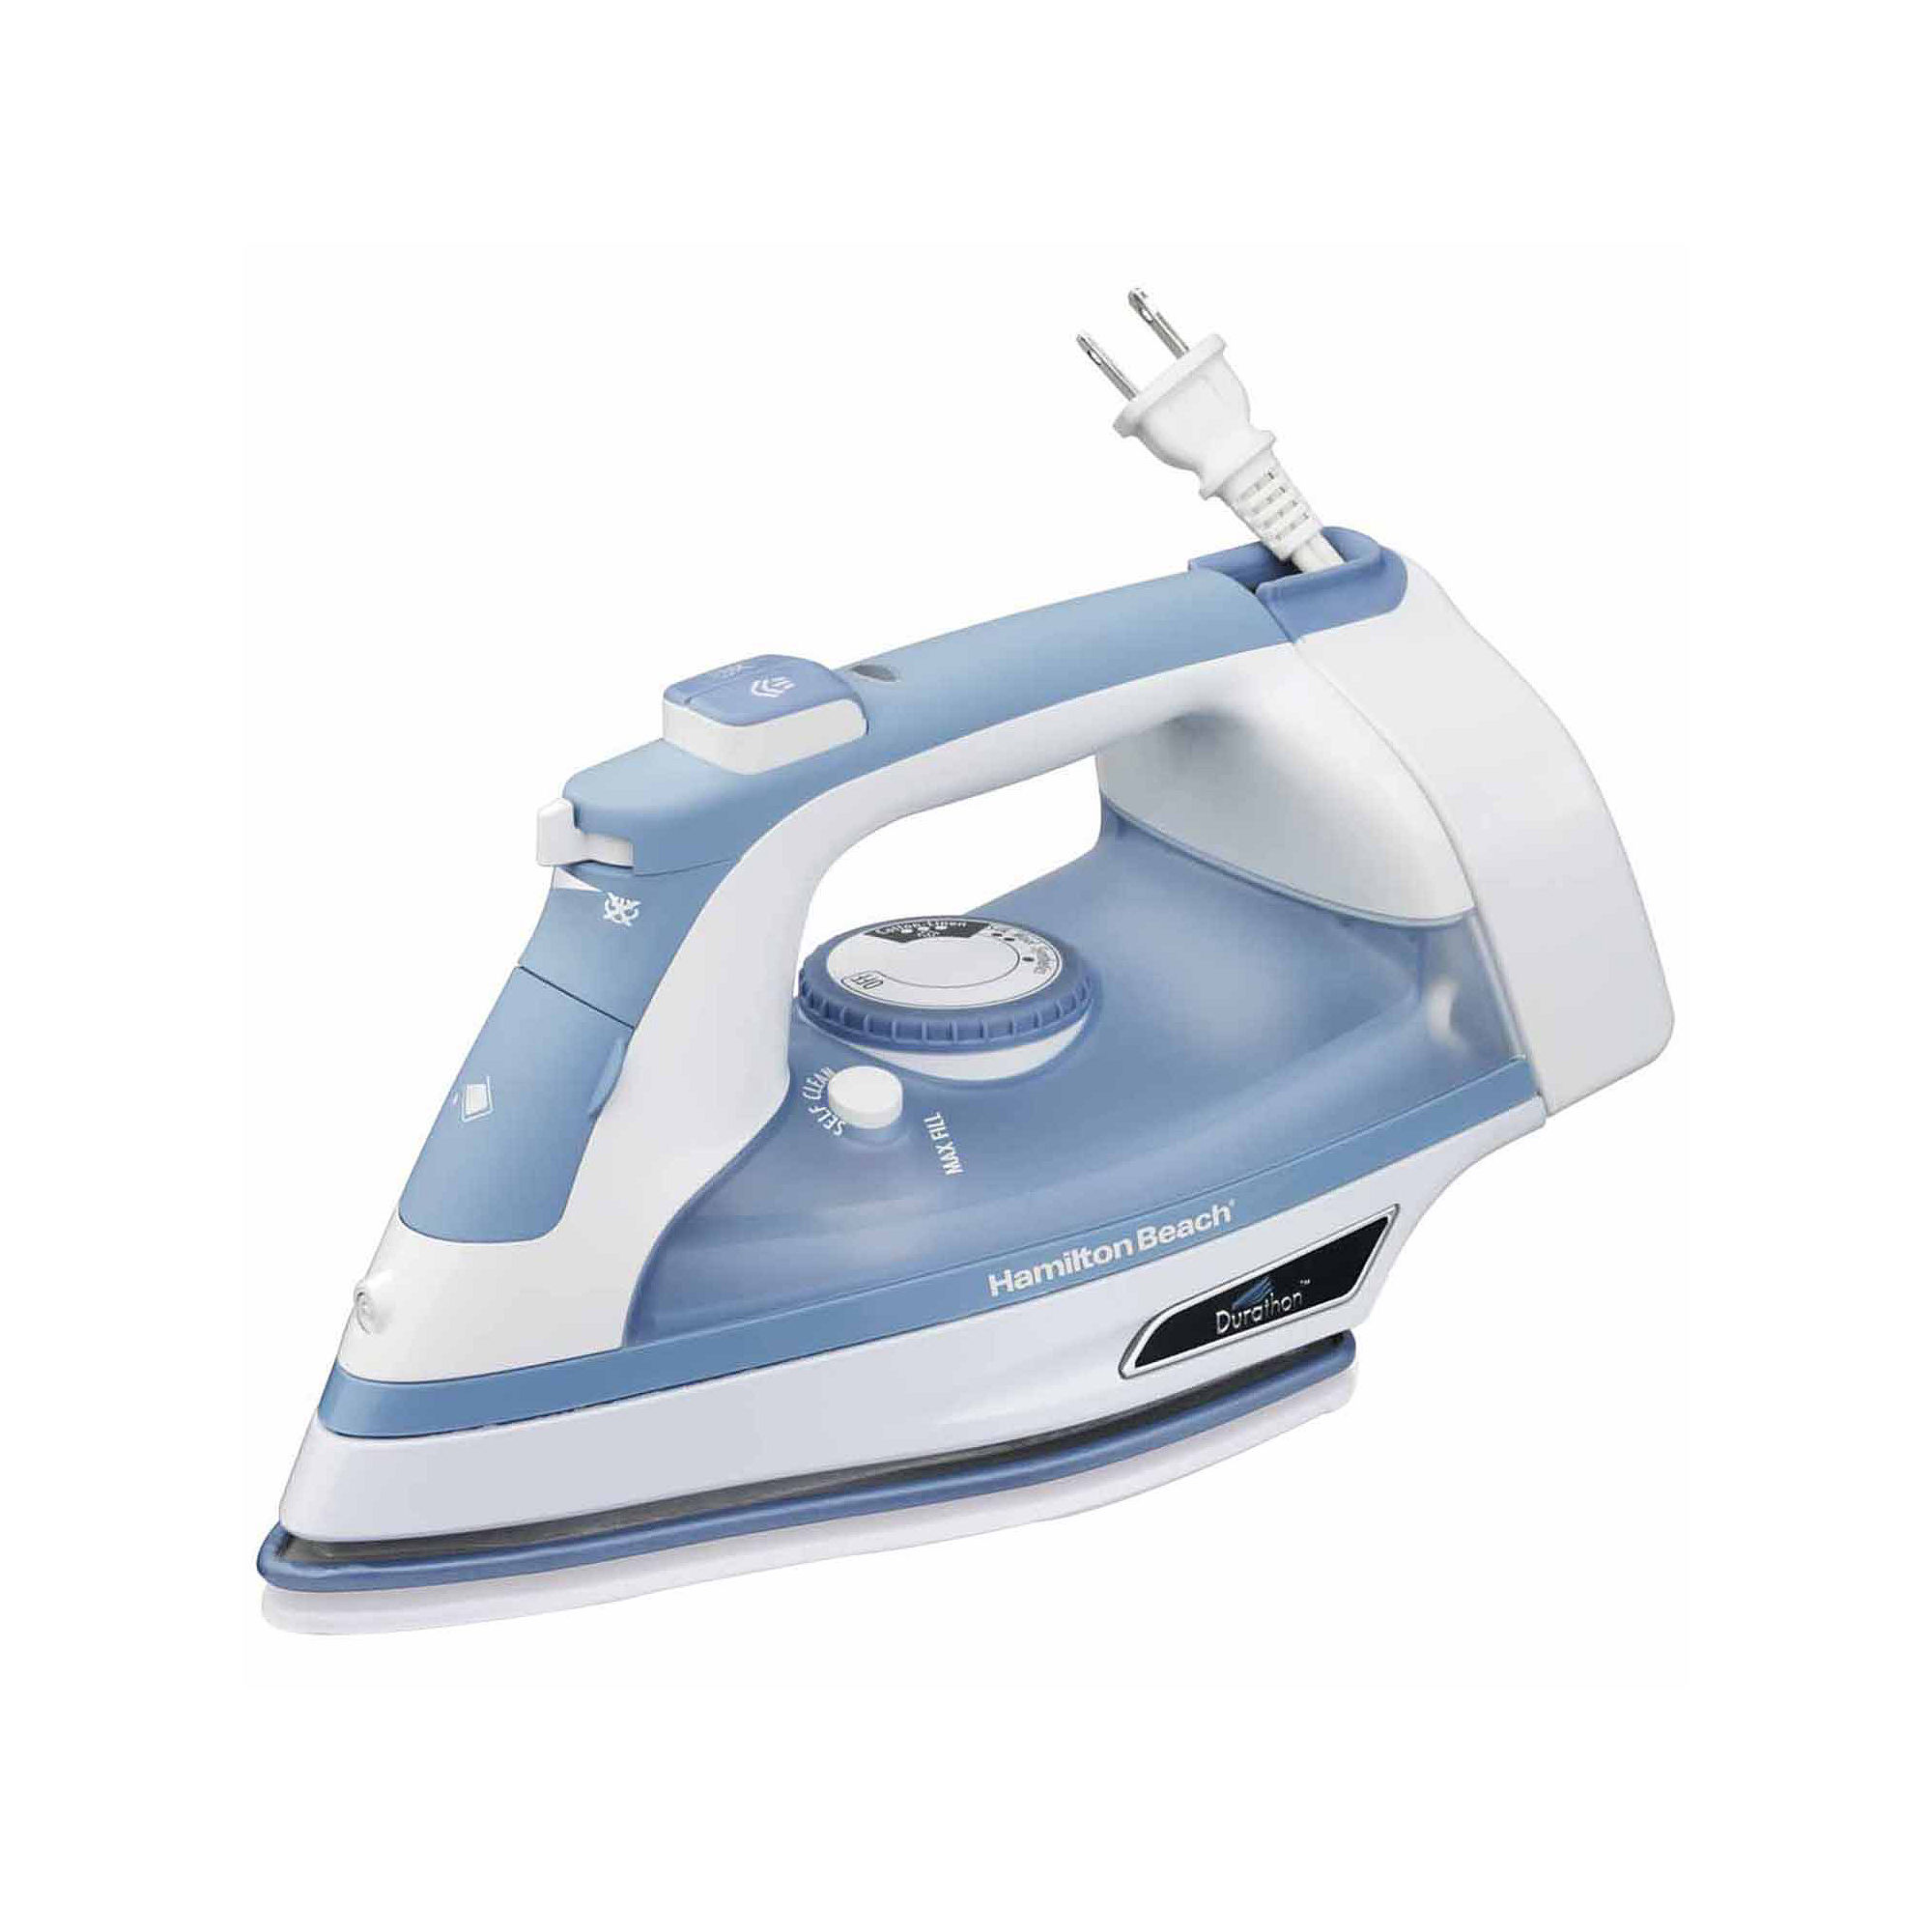 Hamilton Beach Durathon Auto-Off Nonstick Iron With Cord Management